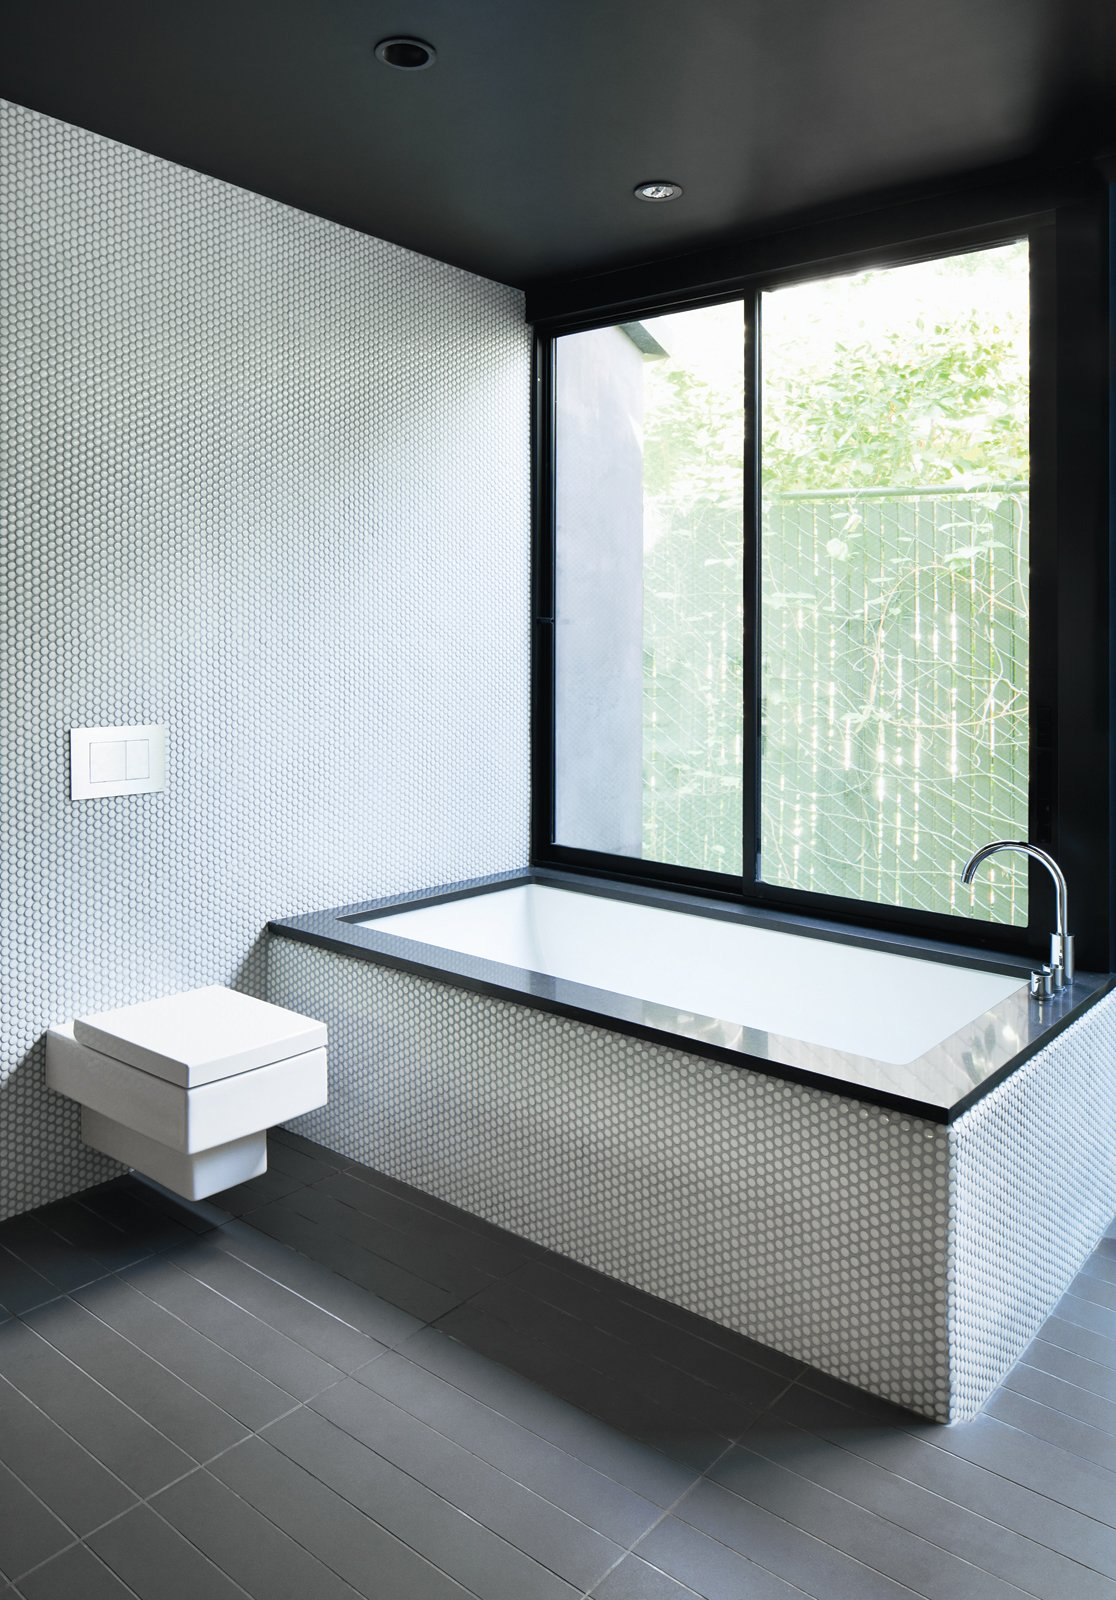 """Architect Noah Walker points out while referring to the bathroom he designed for a renovated Hollywood bungalow, """"I love minimal bathrooms with natural light—less is more. Make sure to pay attention to the details."""""""